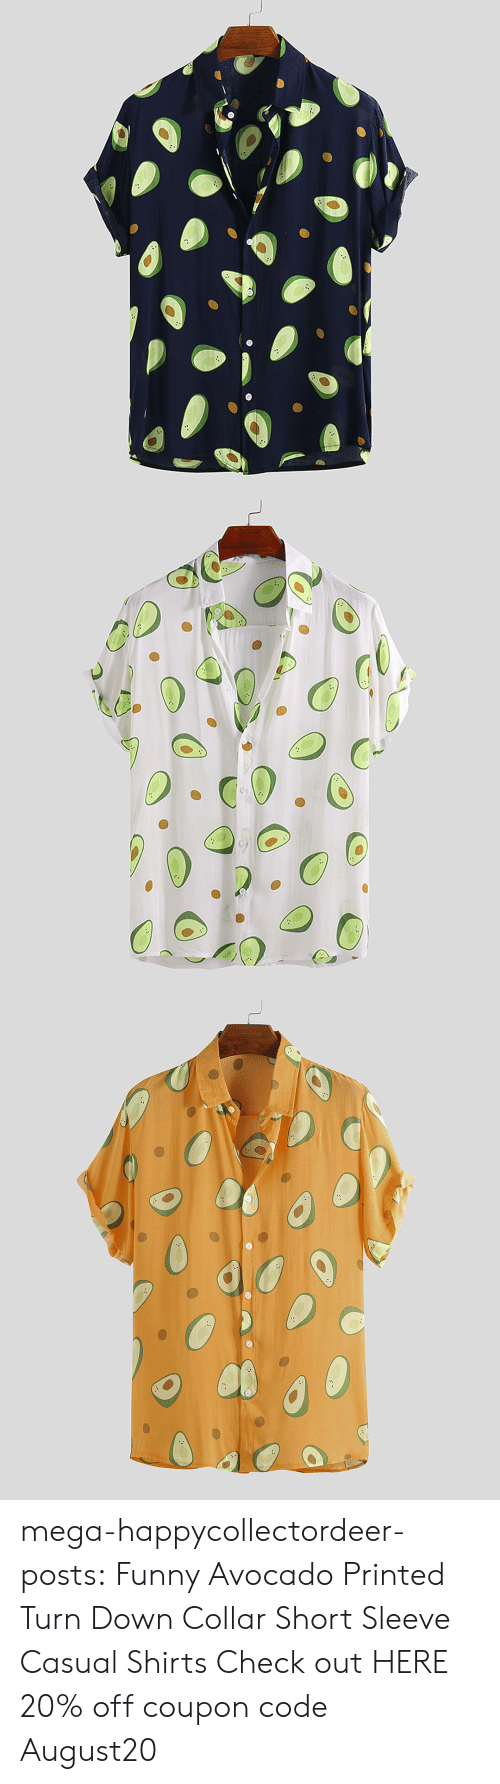 Printed: mega-happycollectordeer-posts:   Funny Avocado Printed Turn Down Collar Short Sleeve Casual Shirts   Check out HERE 20% off coupon code:August20